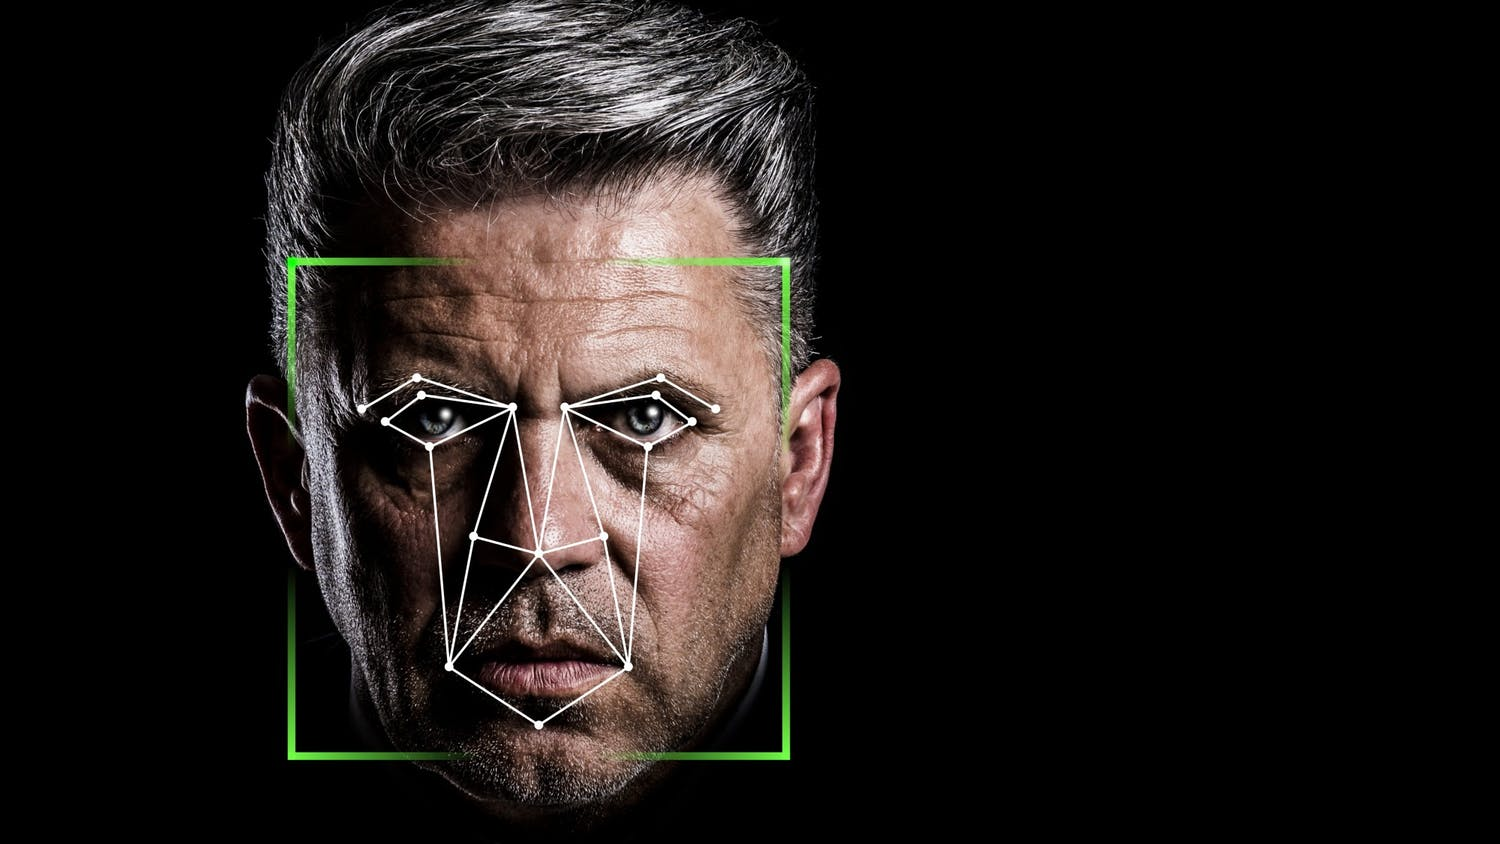 The new legislation will largely prohibit city agencies, departments and divisions from using facial recognition technology. However, the MPD will still be able to use the technology in its already limited capacity to investigate human trafficking cases.